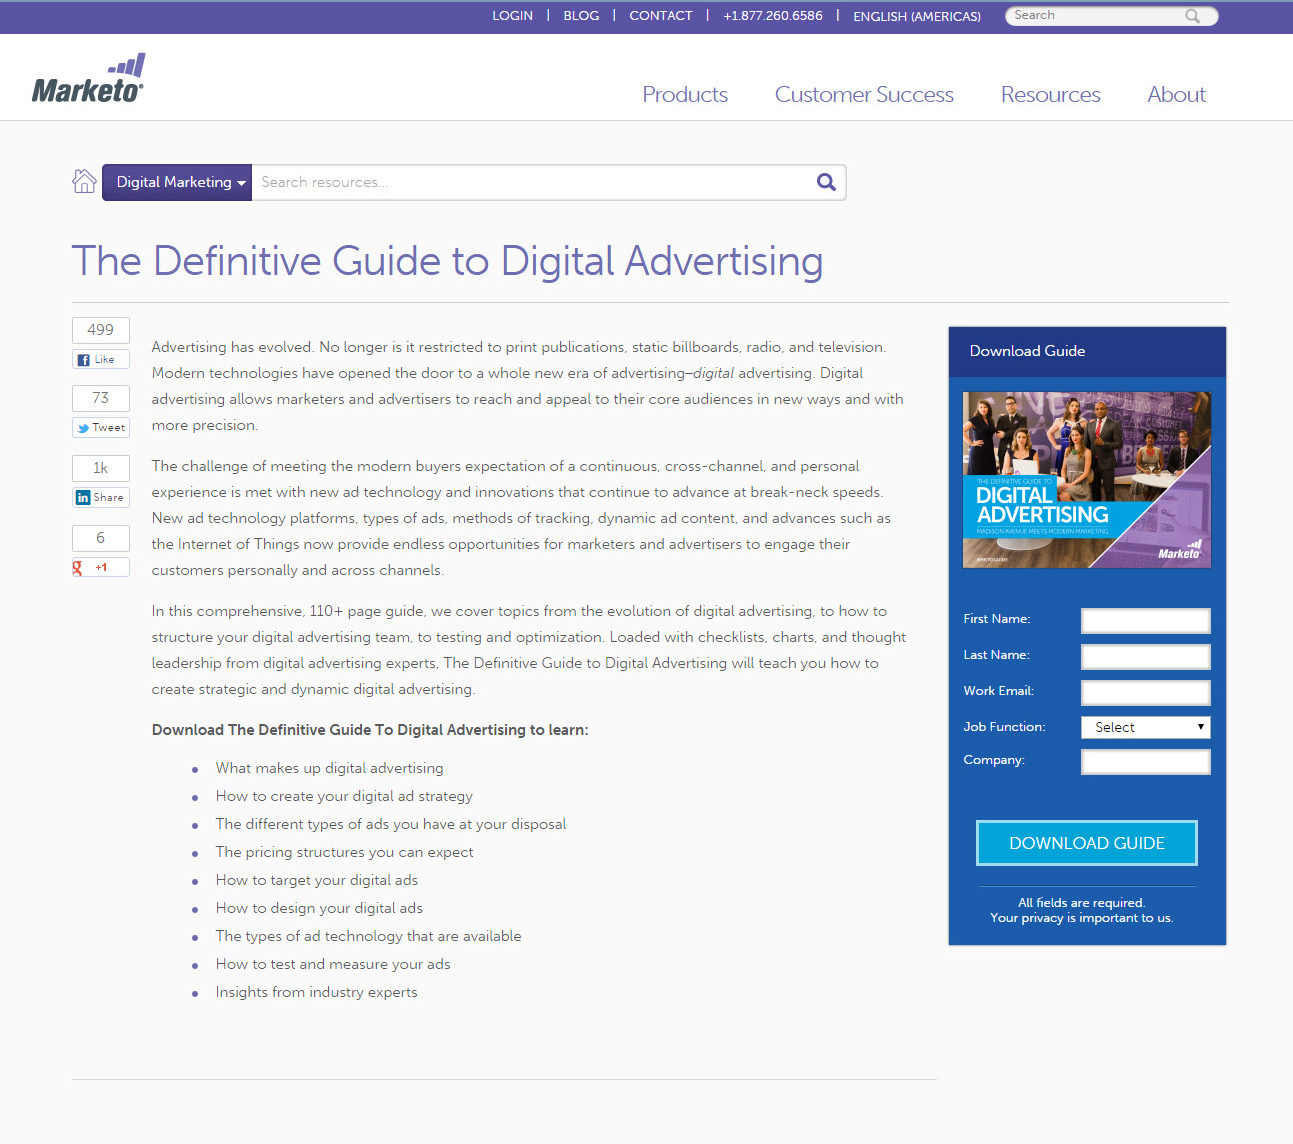 marketo-lead-form